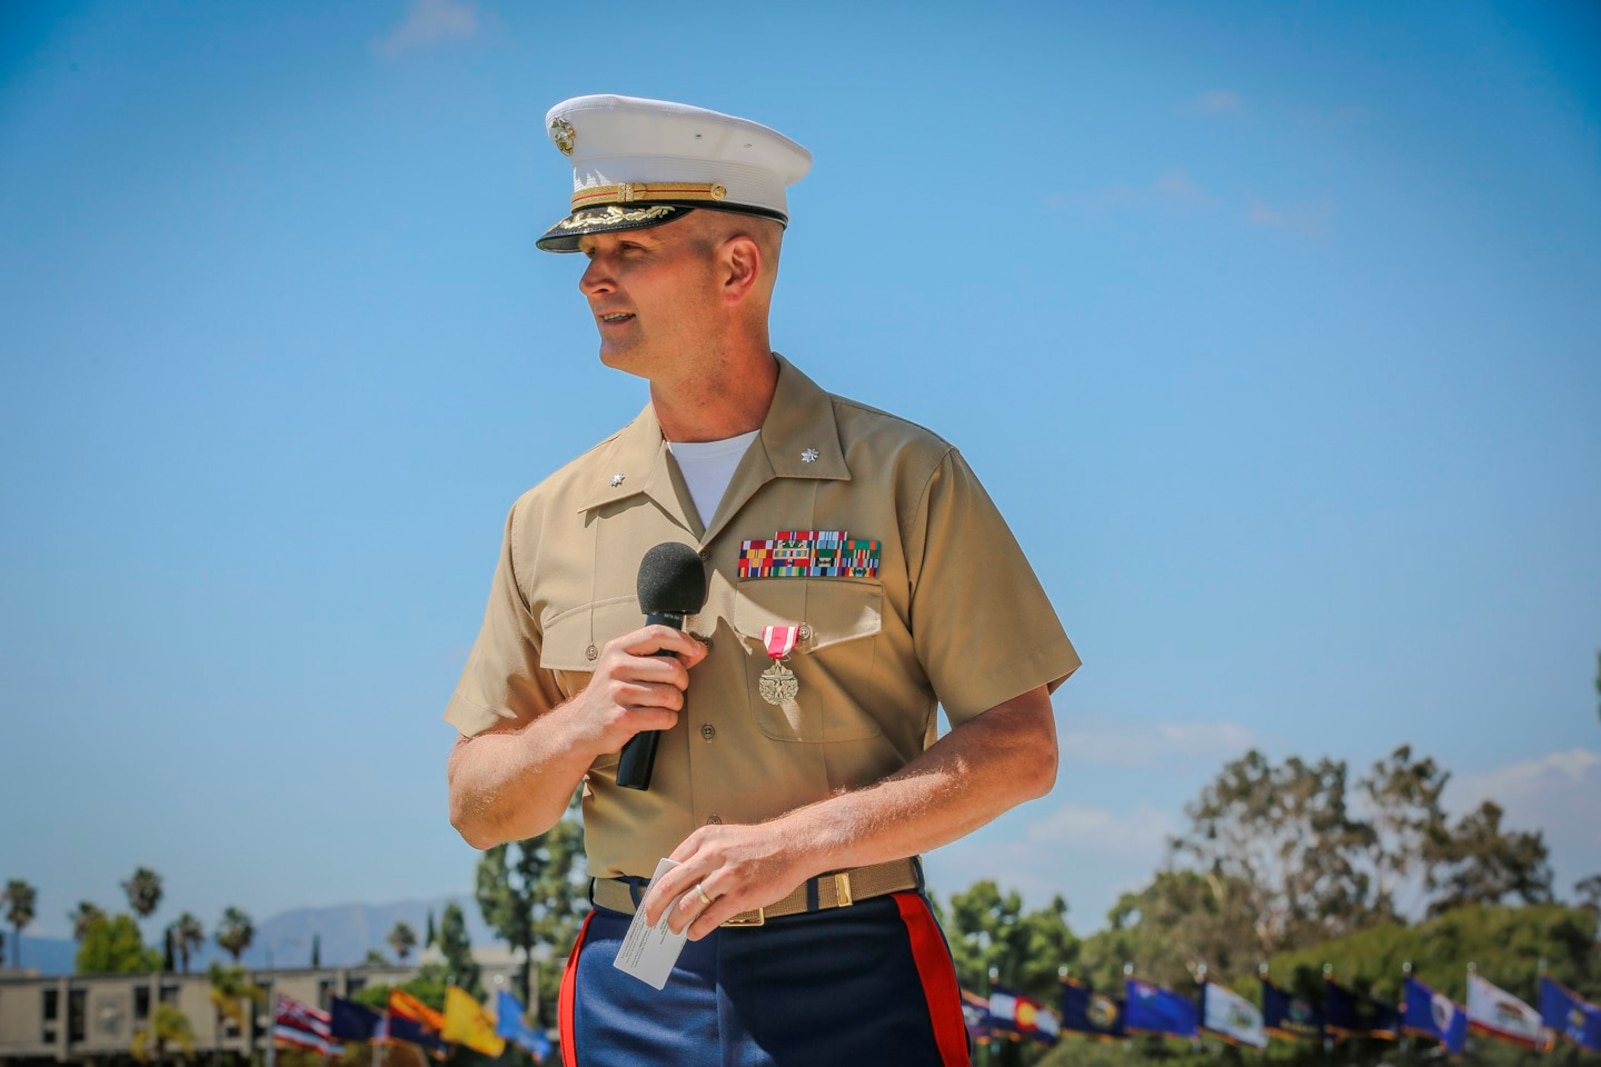 U.S. Marine Corps Lt. Col. Eric. J. Penrod off going commander for 7th Engineer Support Battalion (ESB) 1st Marine Logistics Group speaks about his time with the unit. The change of command for 7th ESB, May 26th 2016, Camp Pendleton, Calif., represents a military tradition that represents the transfer of authority and responsibility of a unit from one commanding officer to another. (U.S. Marine Corps photo by LCpl. Salmineo Sherman Jr. 1st MLG Combat Camera/released)